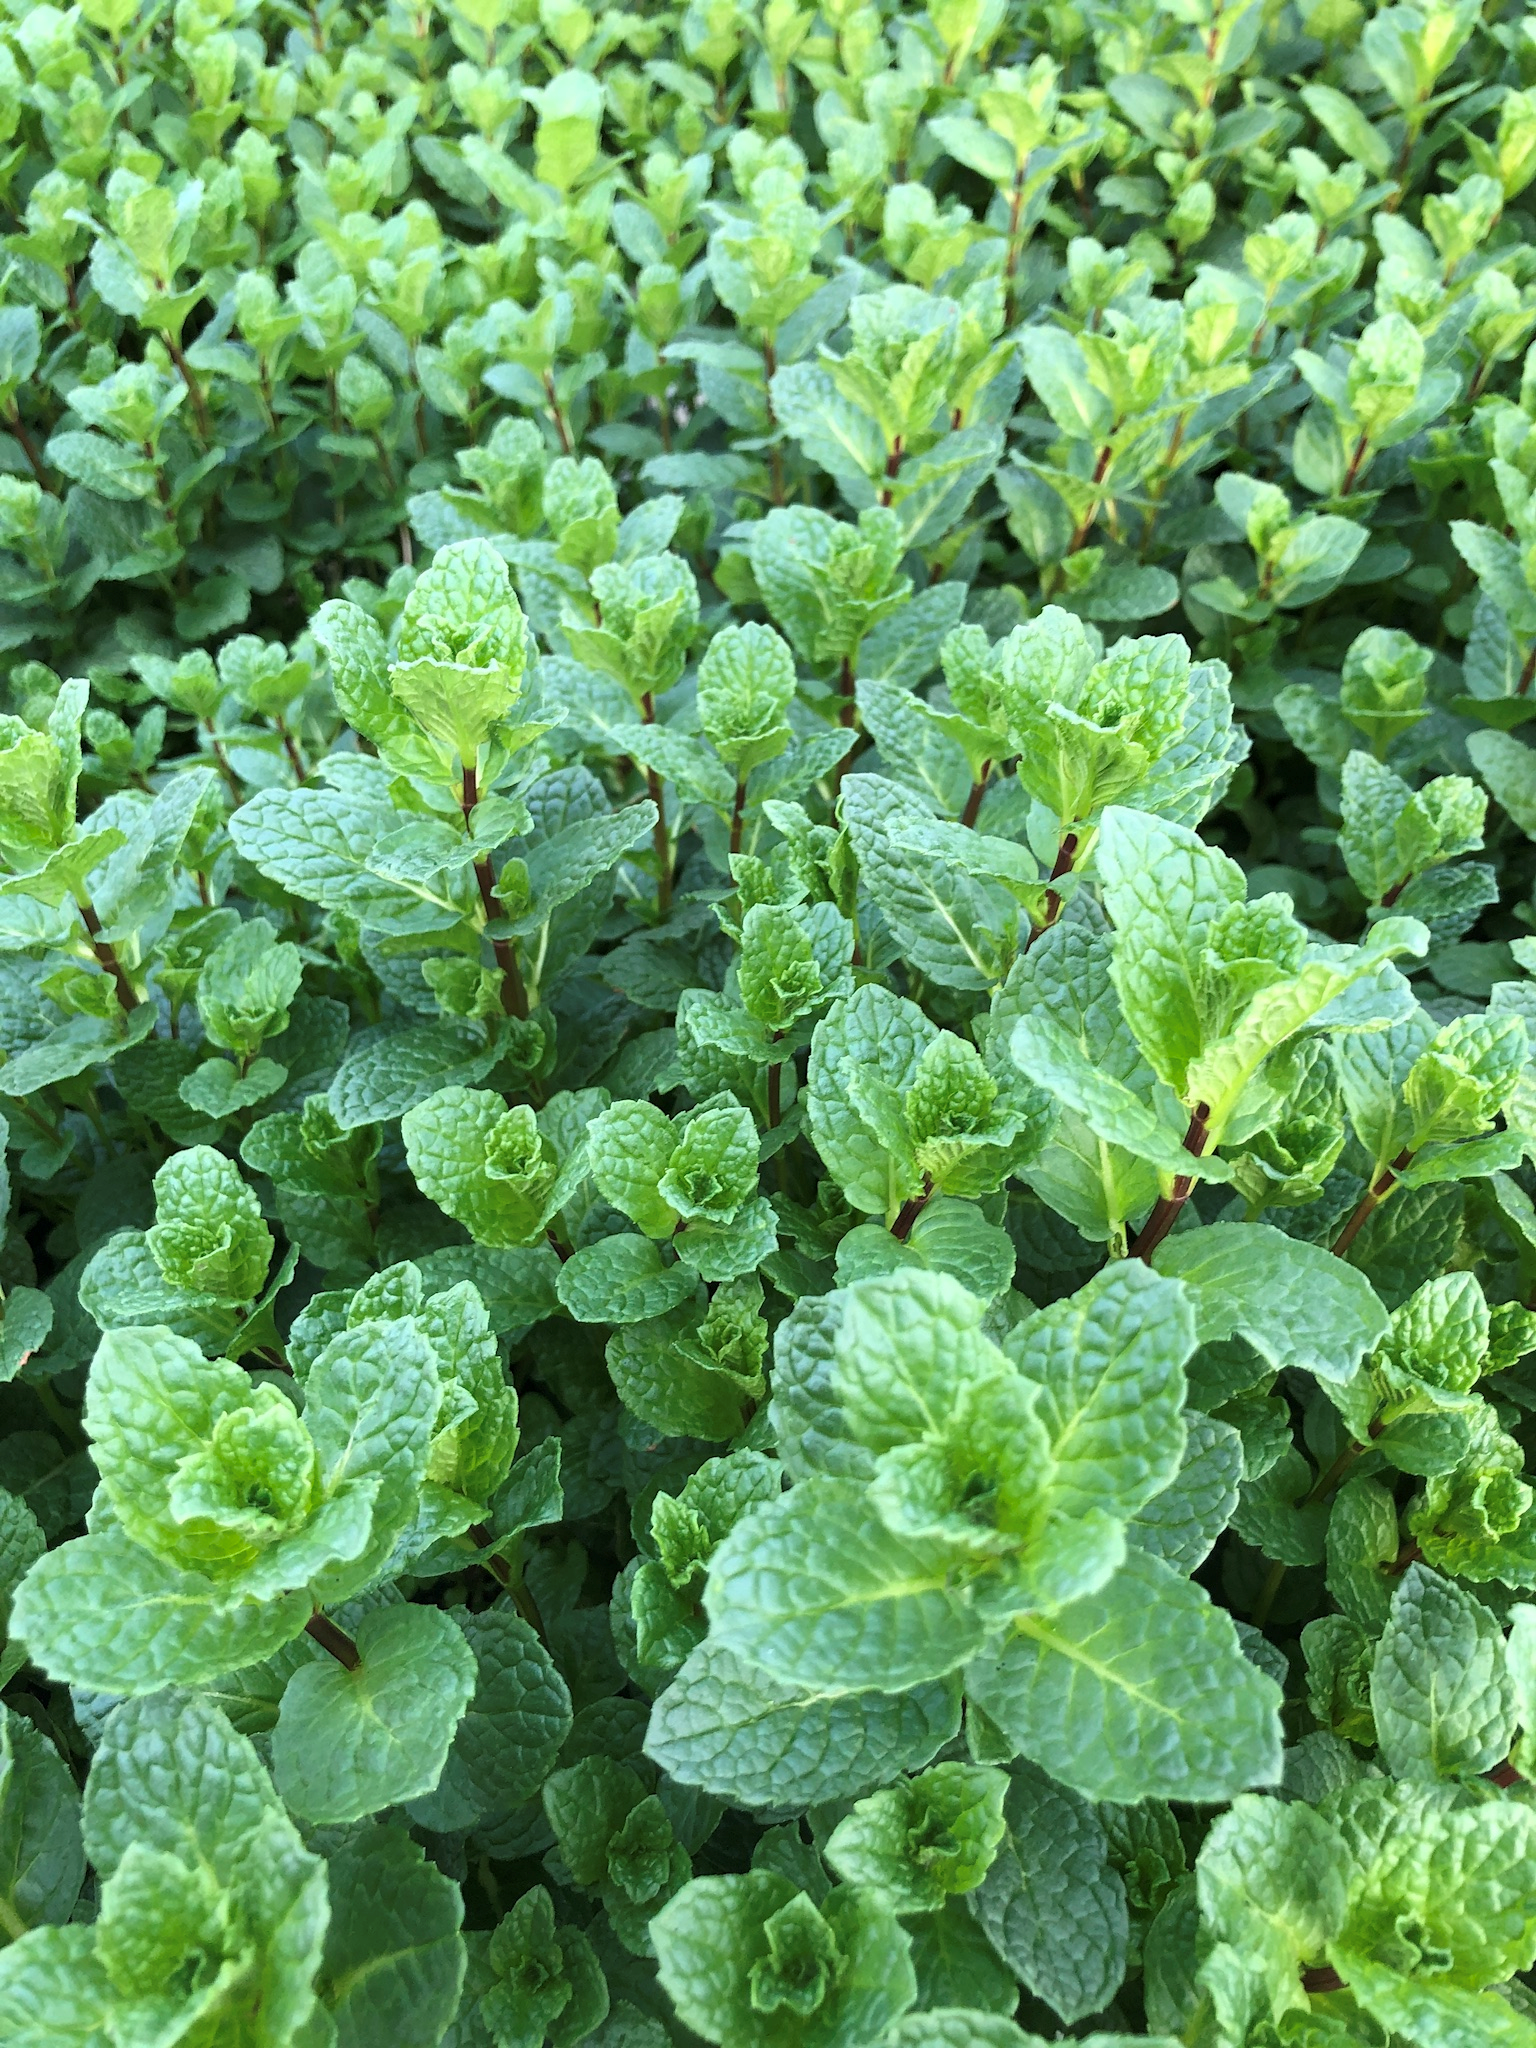 A up close shot of some of our mint production